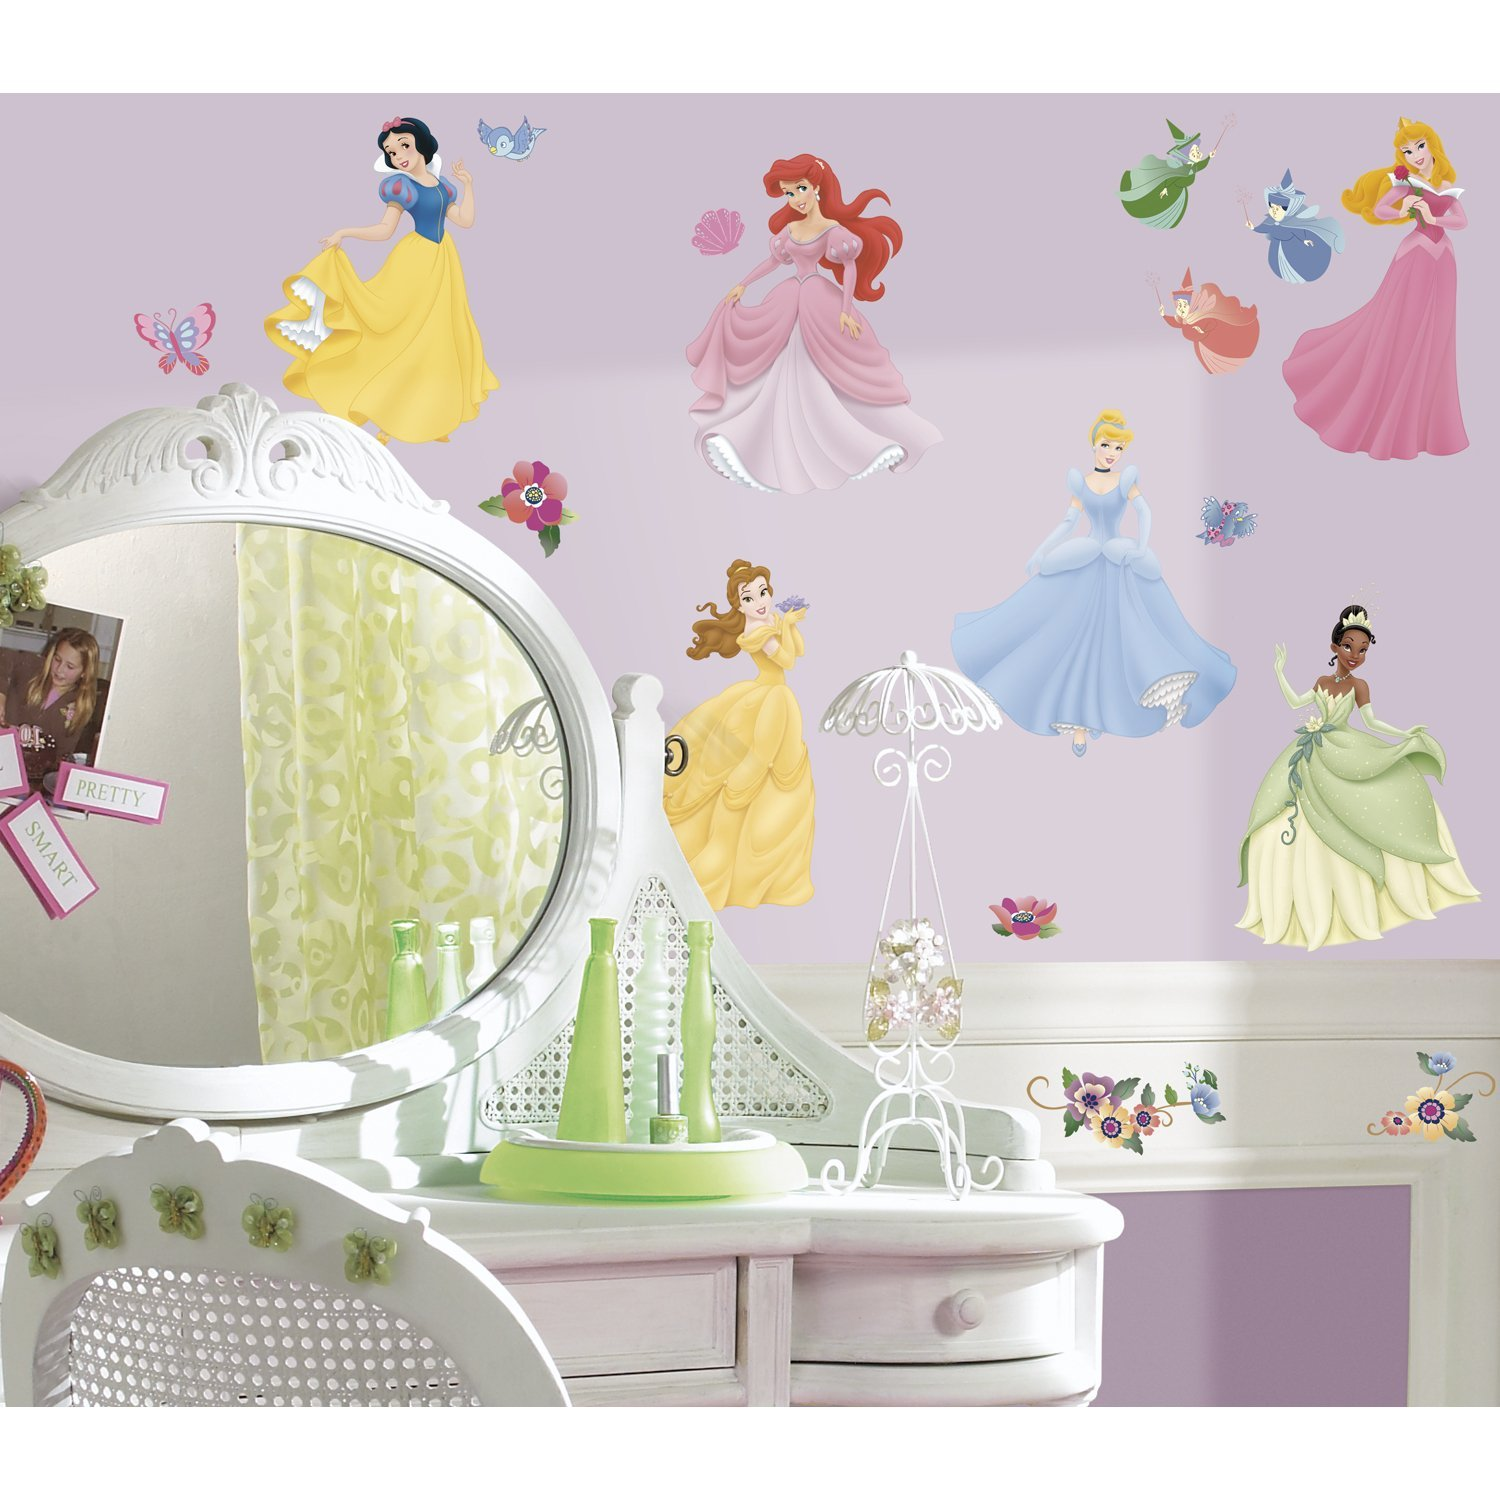 Disney princess peel stick wall decals with gems disney princess wall decalsg amipublicfo Gallery